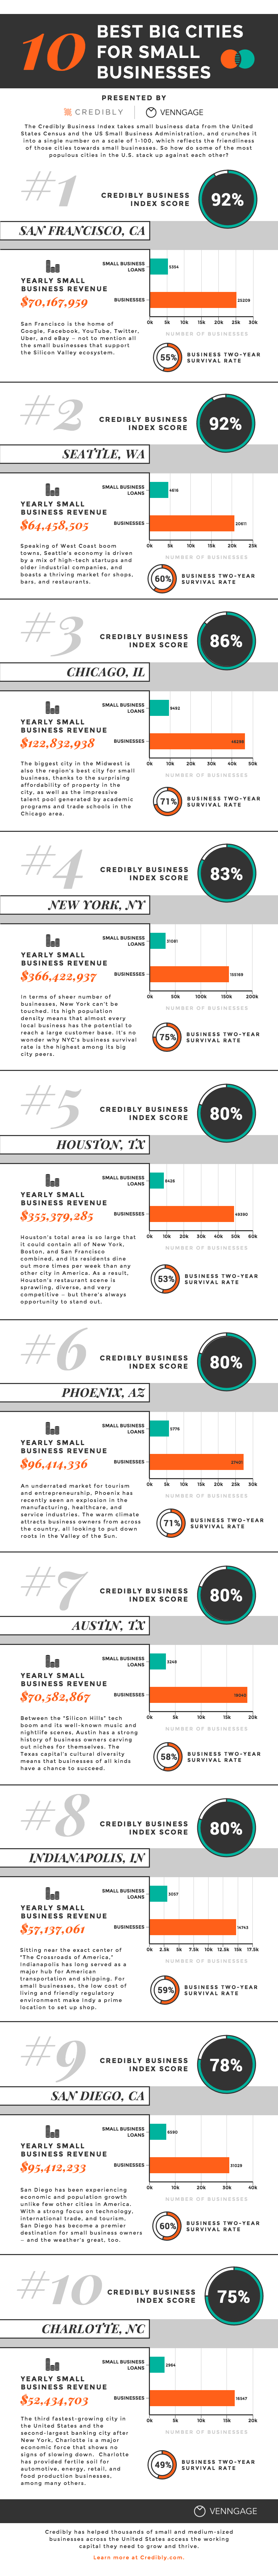 The 10 Best Big Cities for Small Business infographic